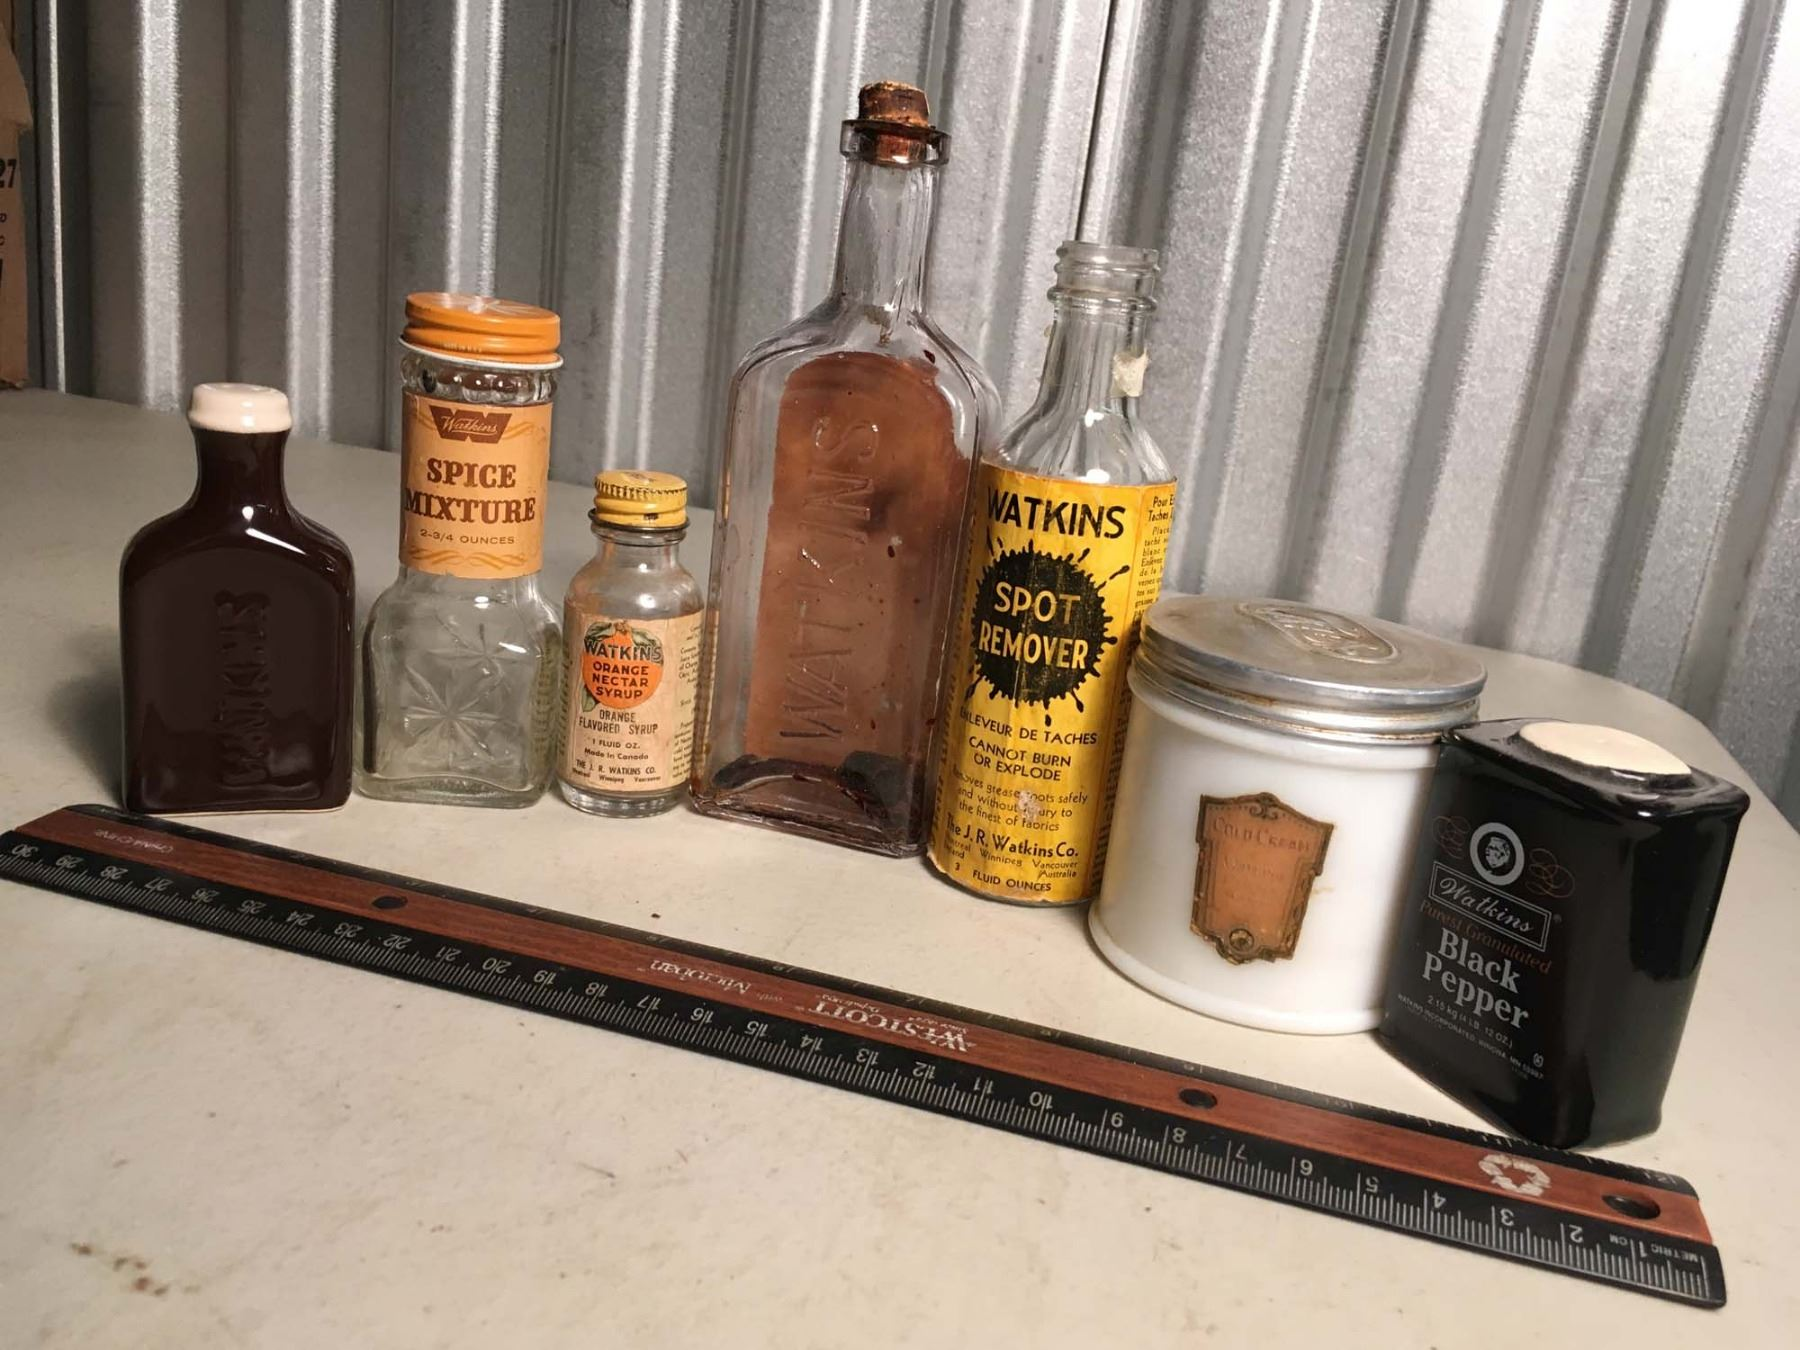 misc watkins glass containers spice mixture orange syrup. Black Bedroom Furniture Sets. Home Design Ideas